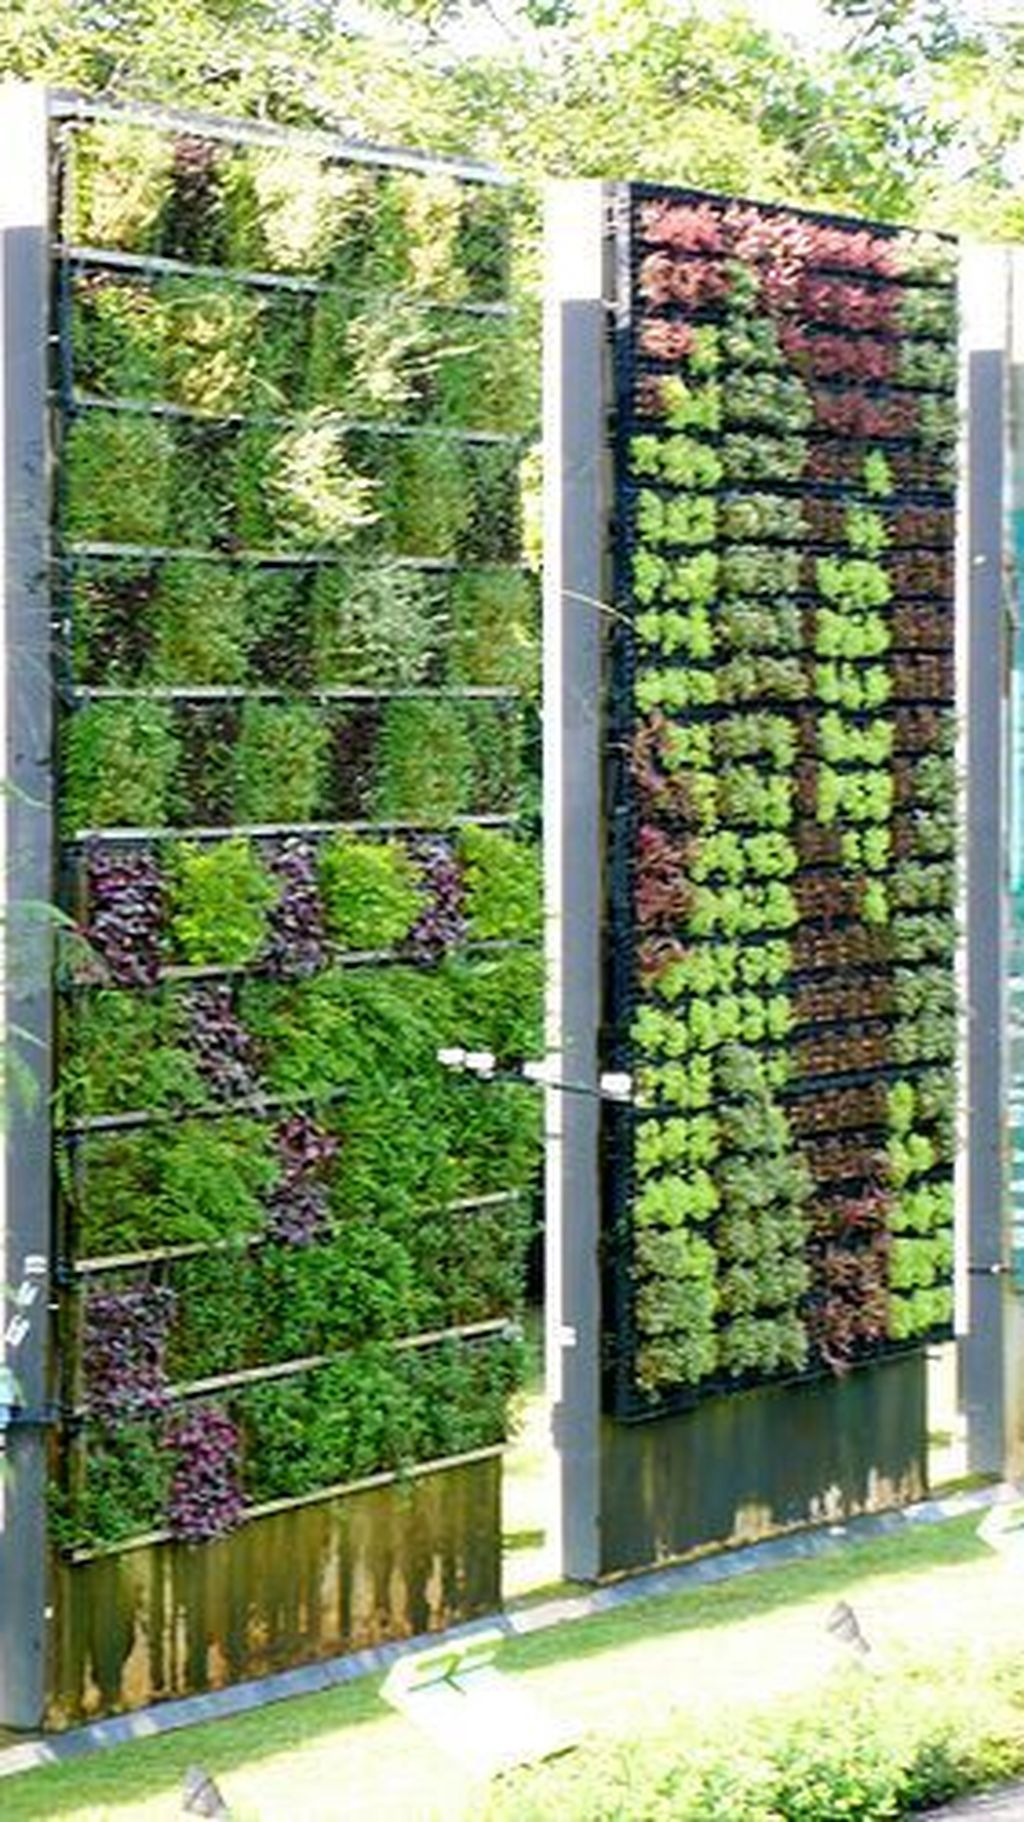 Succulents Living Walls Vertical Gardens Ideas21